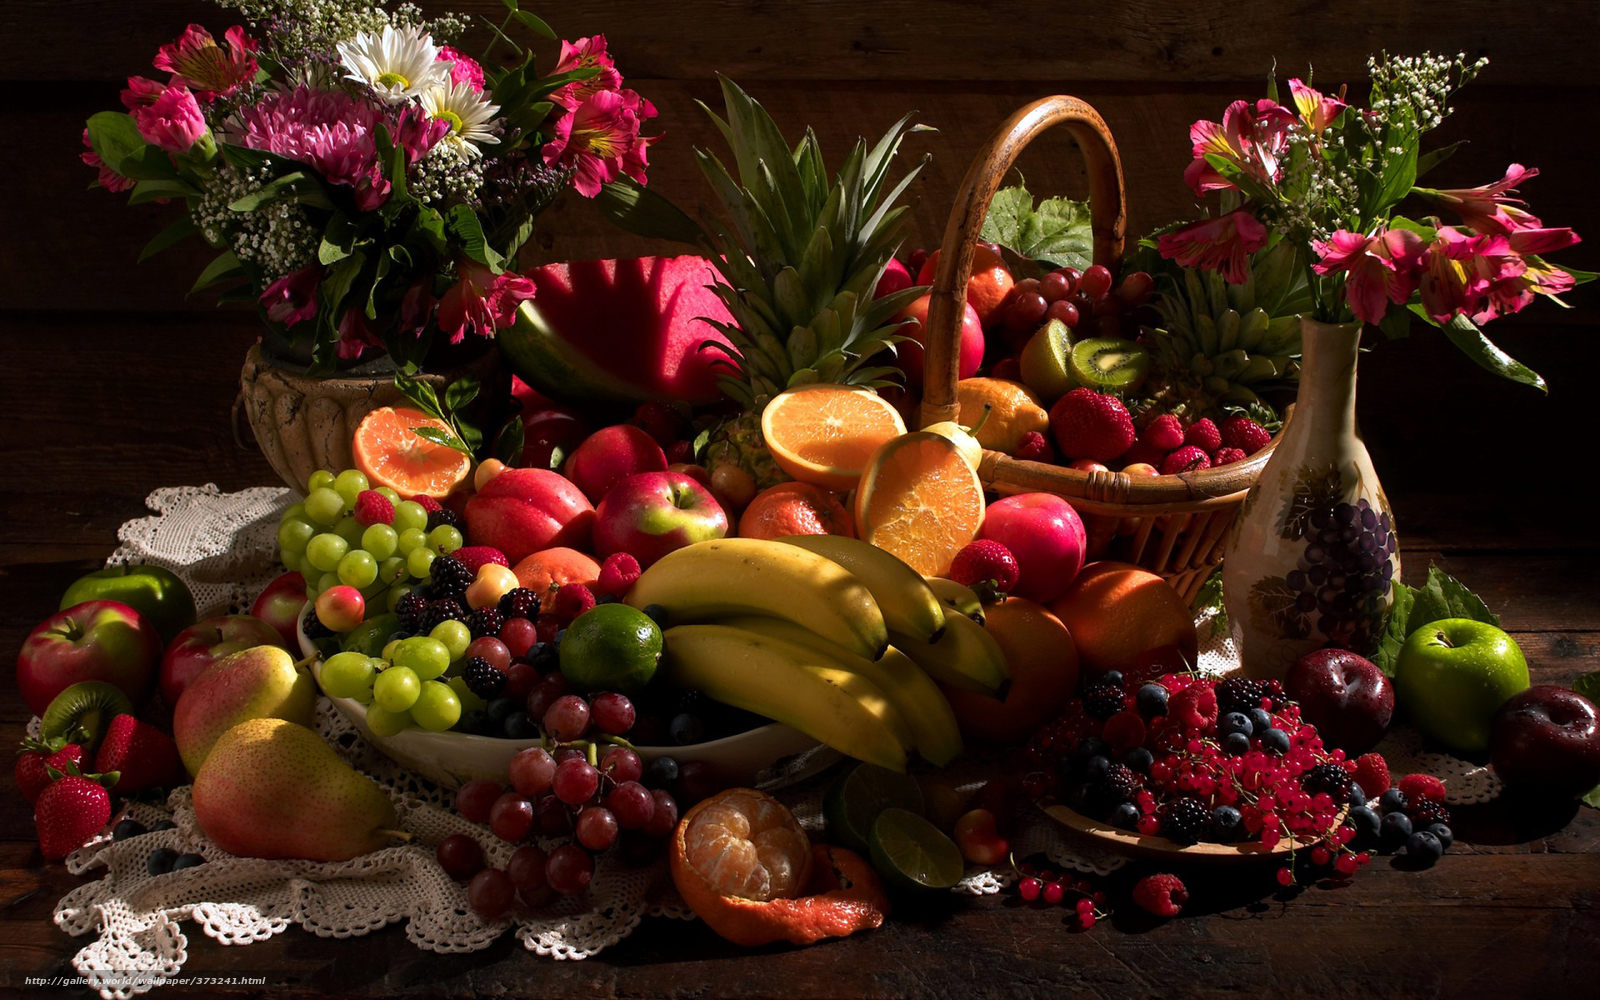 Food Fruits and Flowers